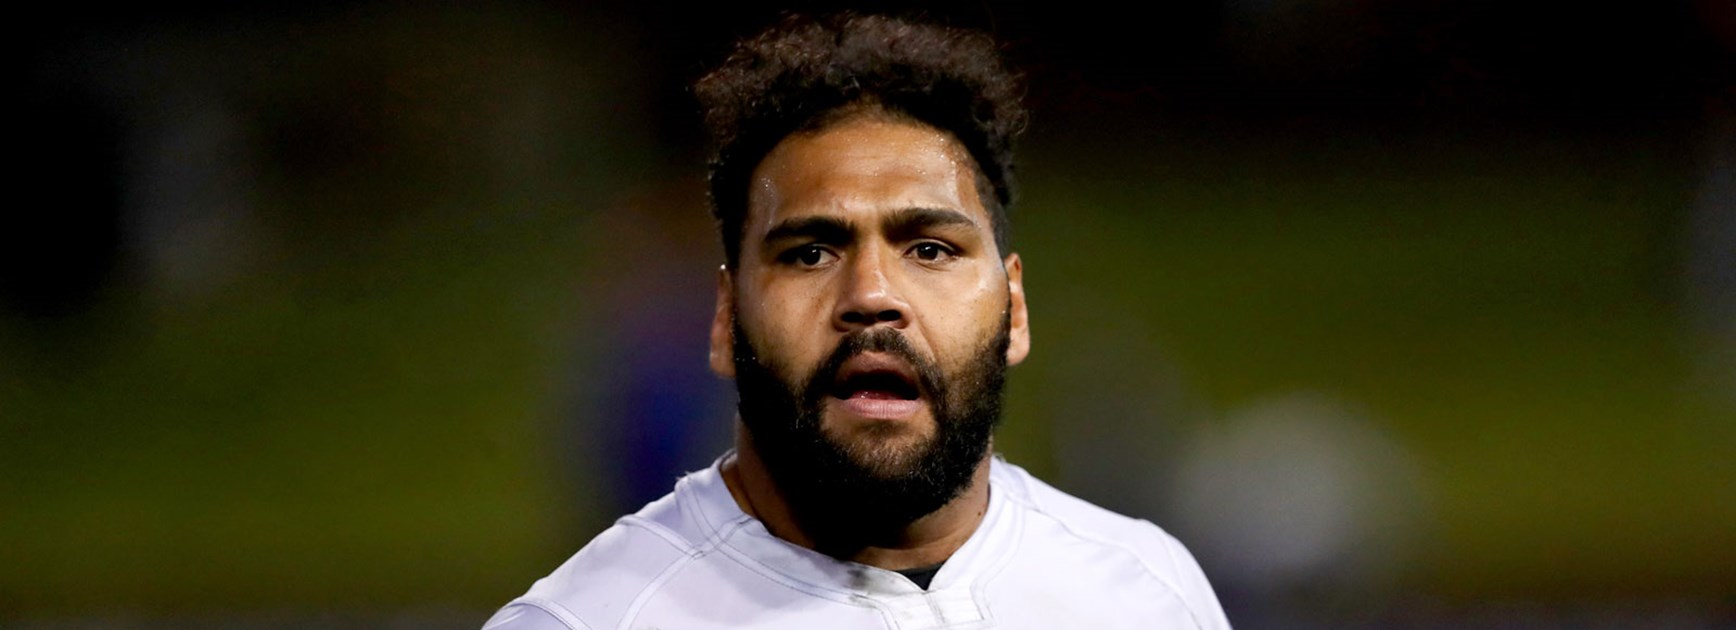 Thaiday hits back at contract talk